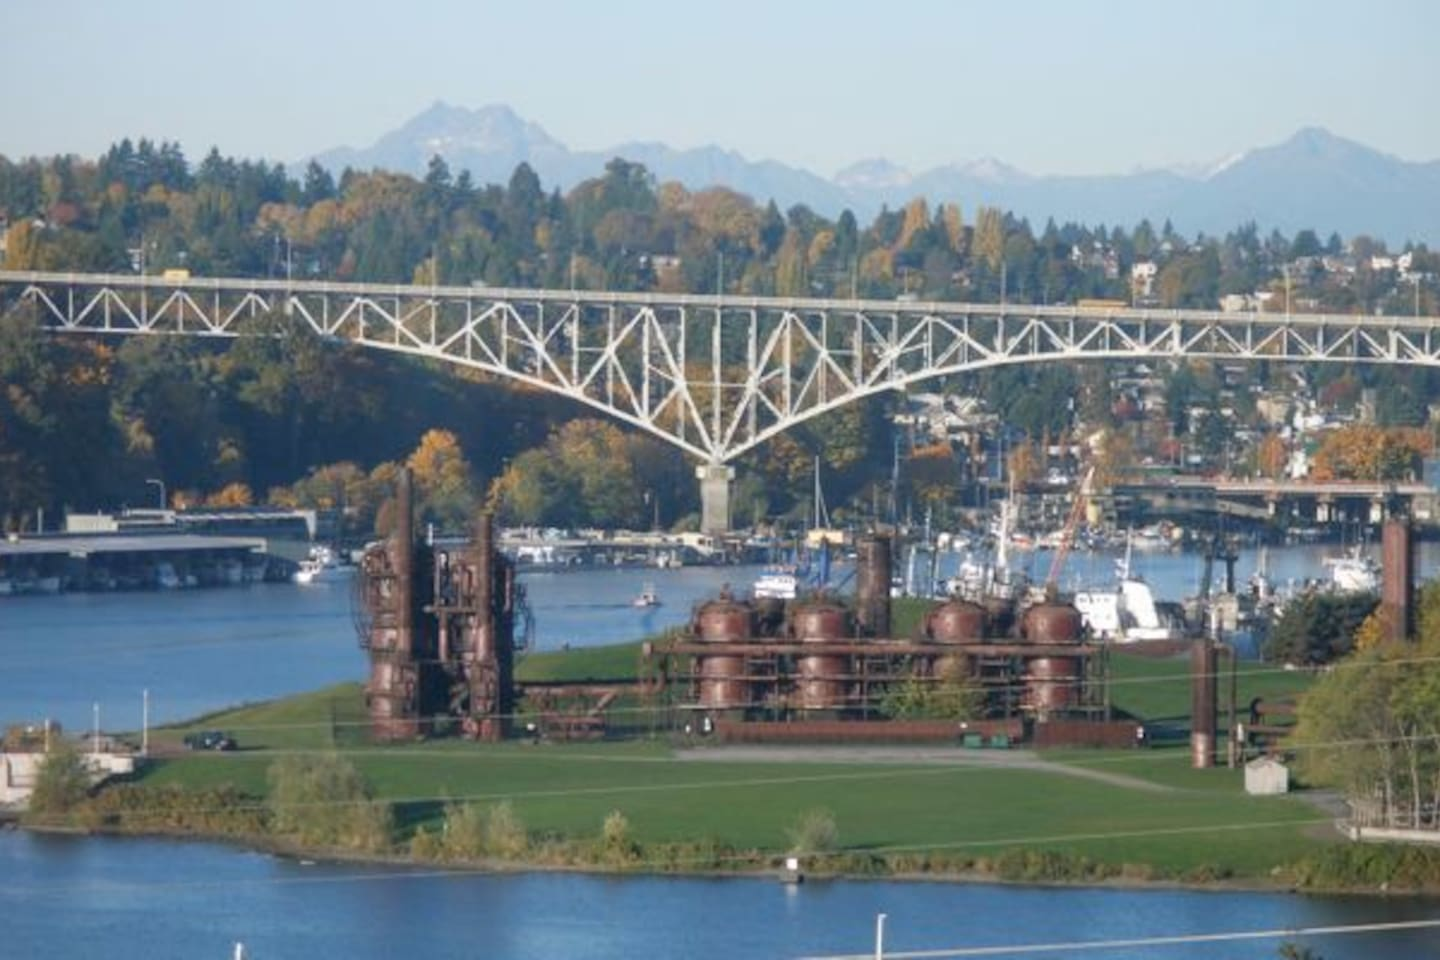 Our Lake Union, Olympic Mountains, Gas Works Park View!